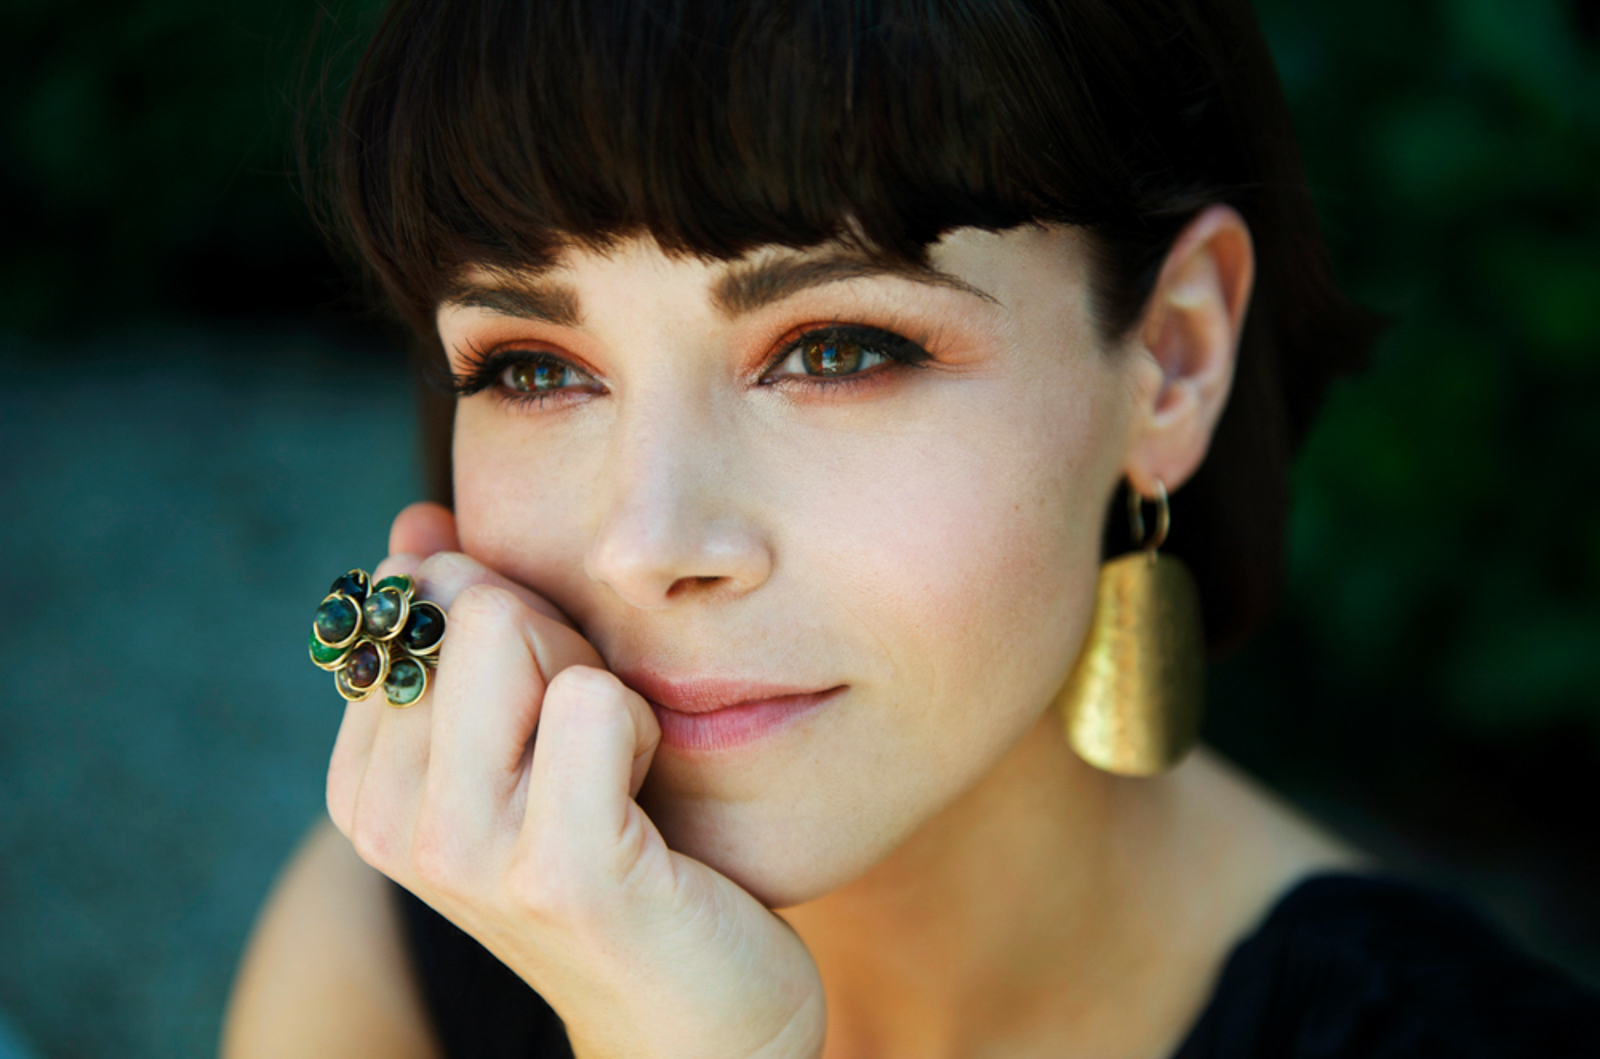 Portrait of woman with earrings and flower ring, looking pensive